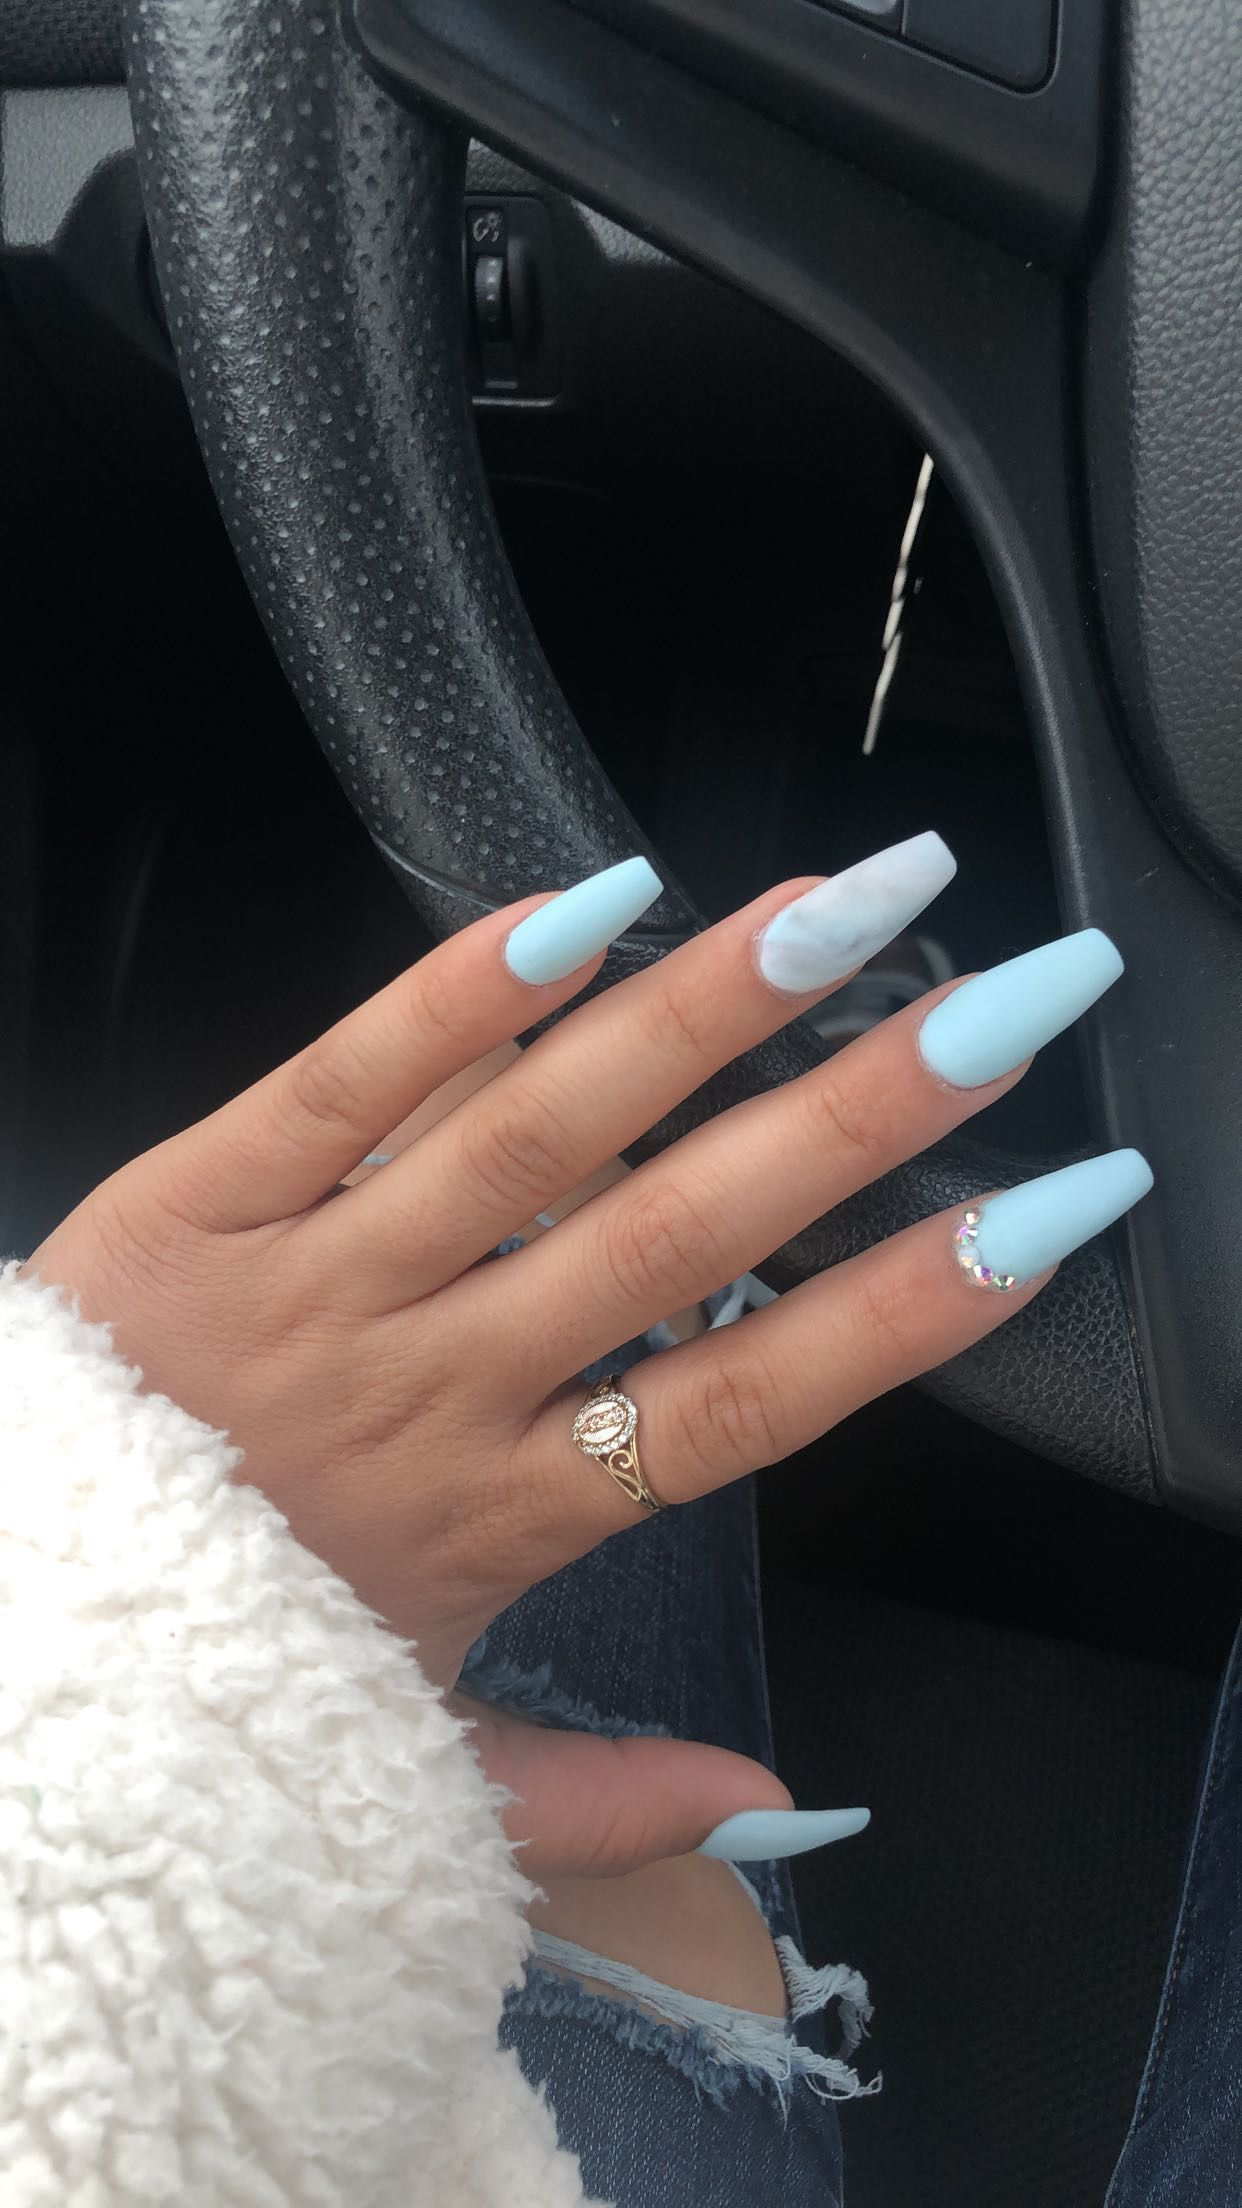 Pin By Carmen On Nails With Images Winter Nails Acrylic Blue Acrylic Nails Baby Blue Acrylic Nails